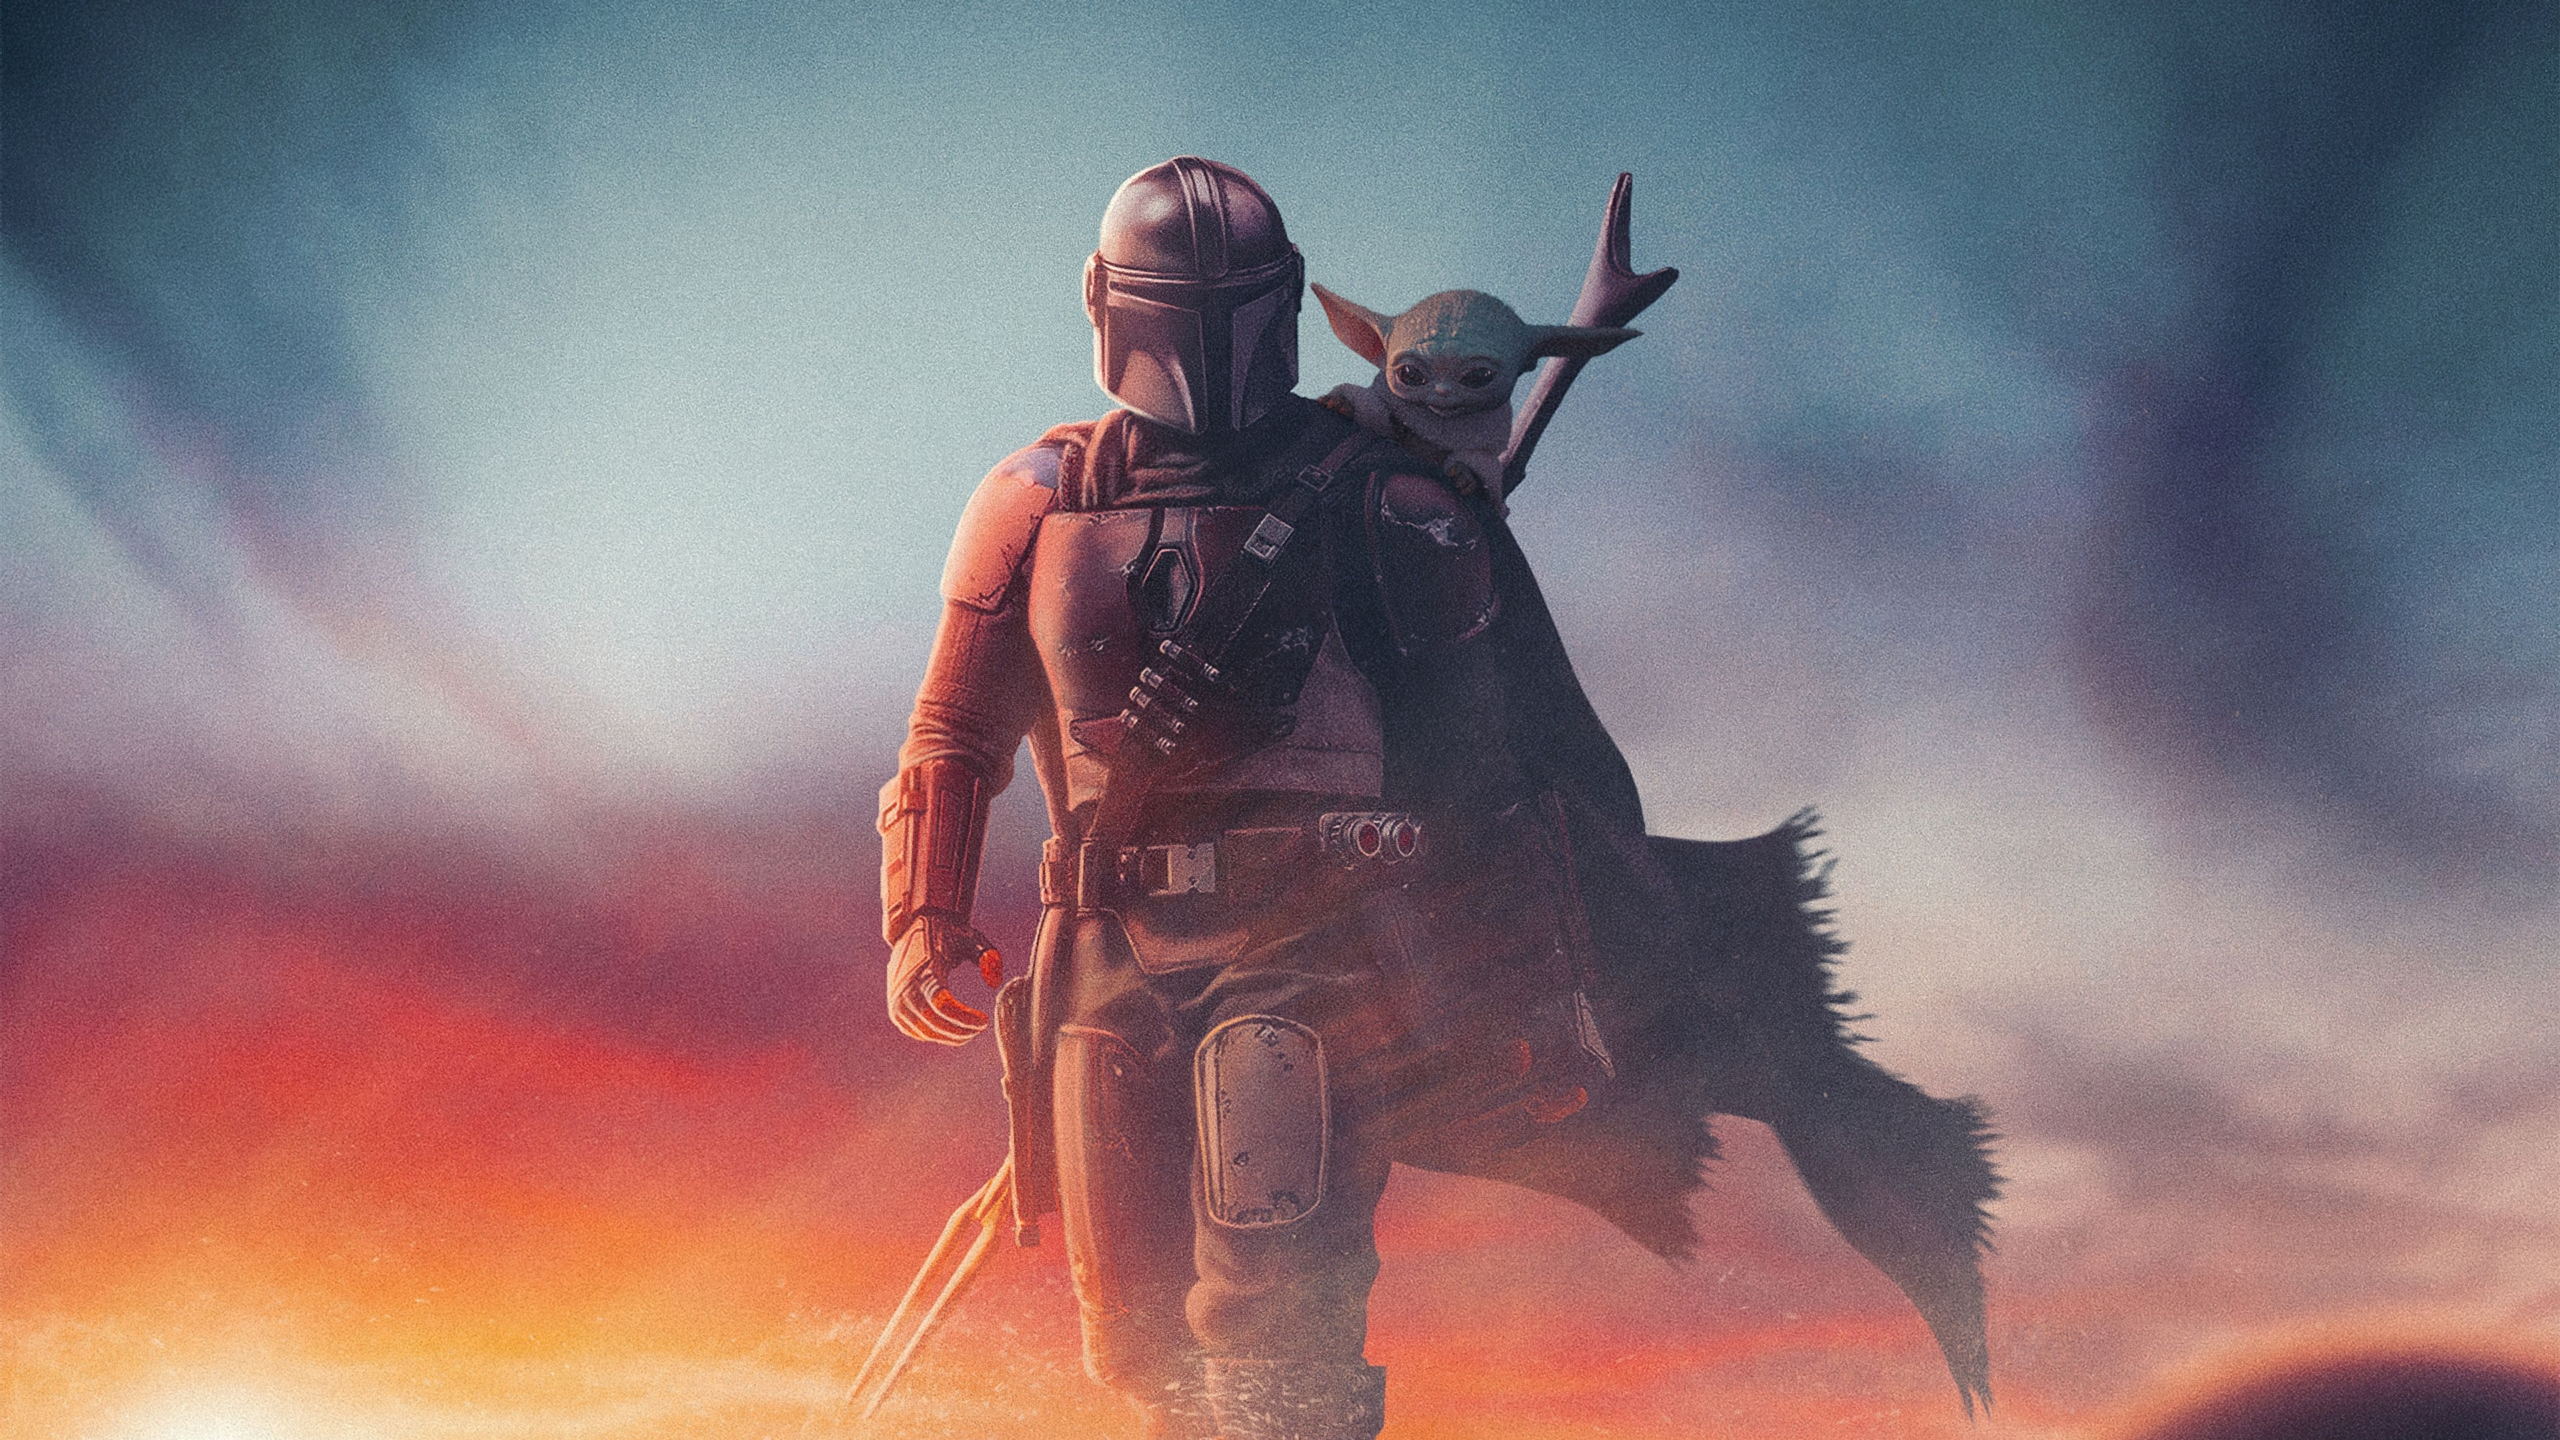 The Mandalorian Wallpaper – A Gift to the Bride Who Was Married by VN Kumar